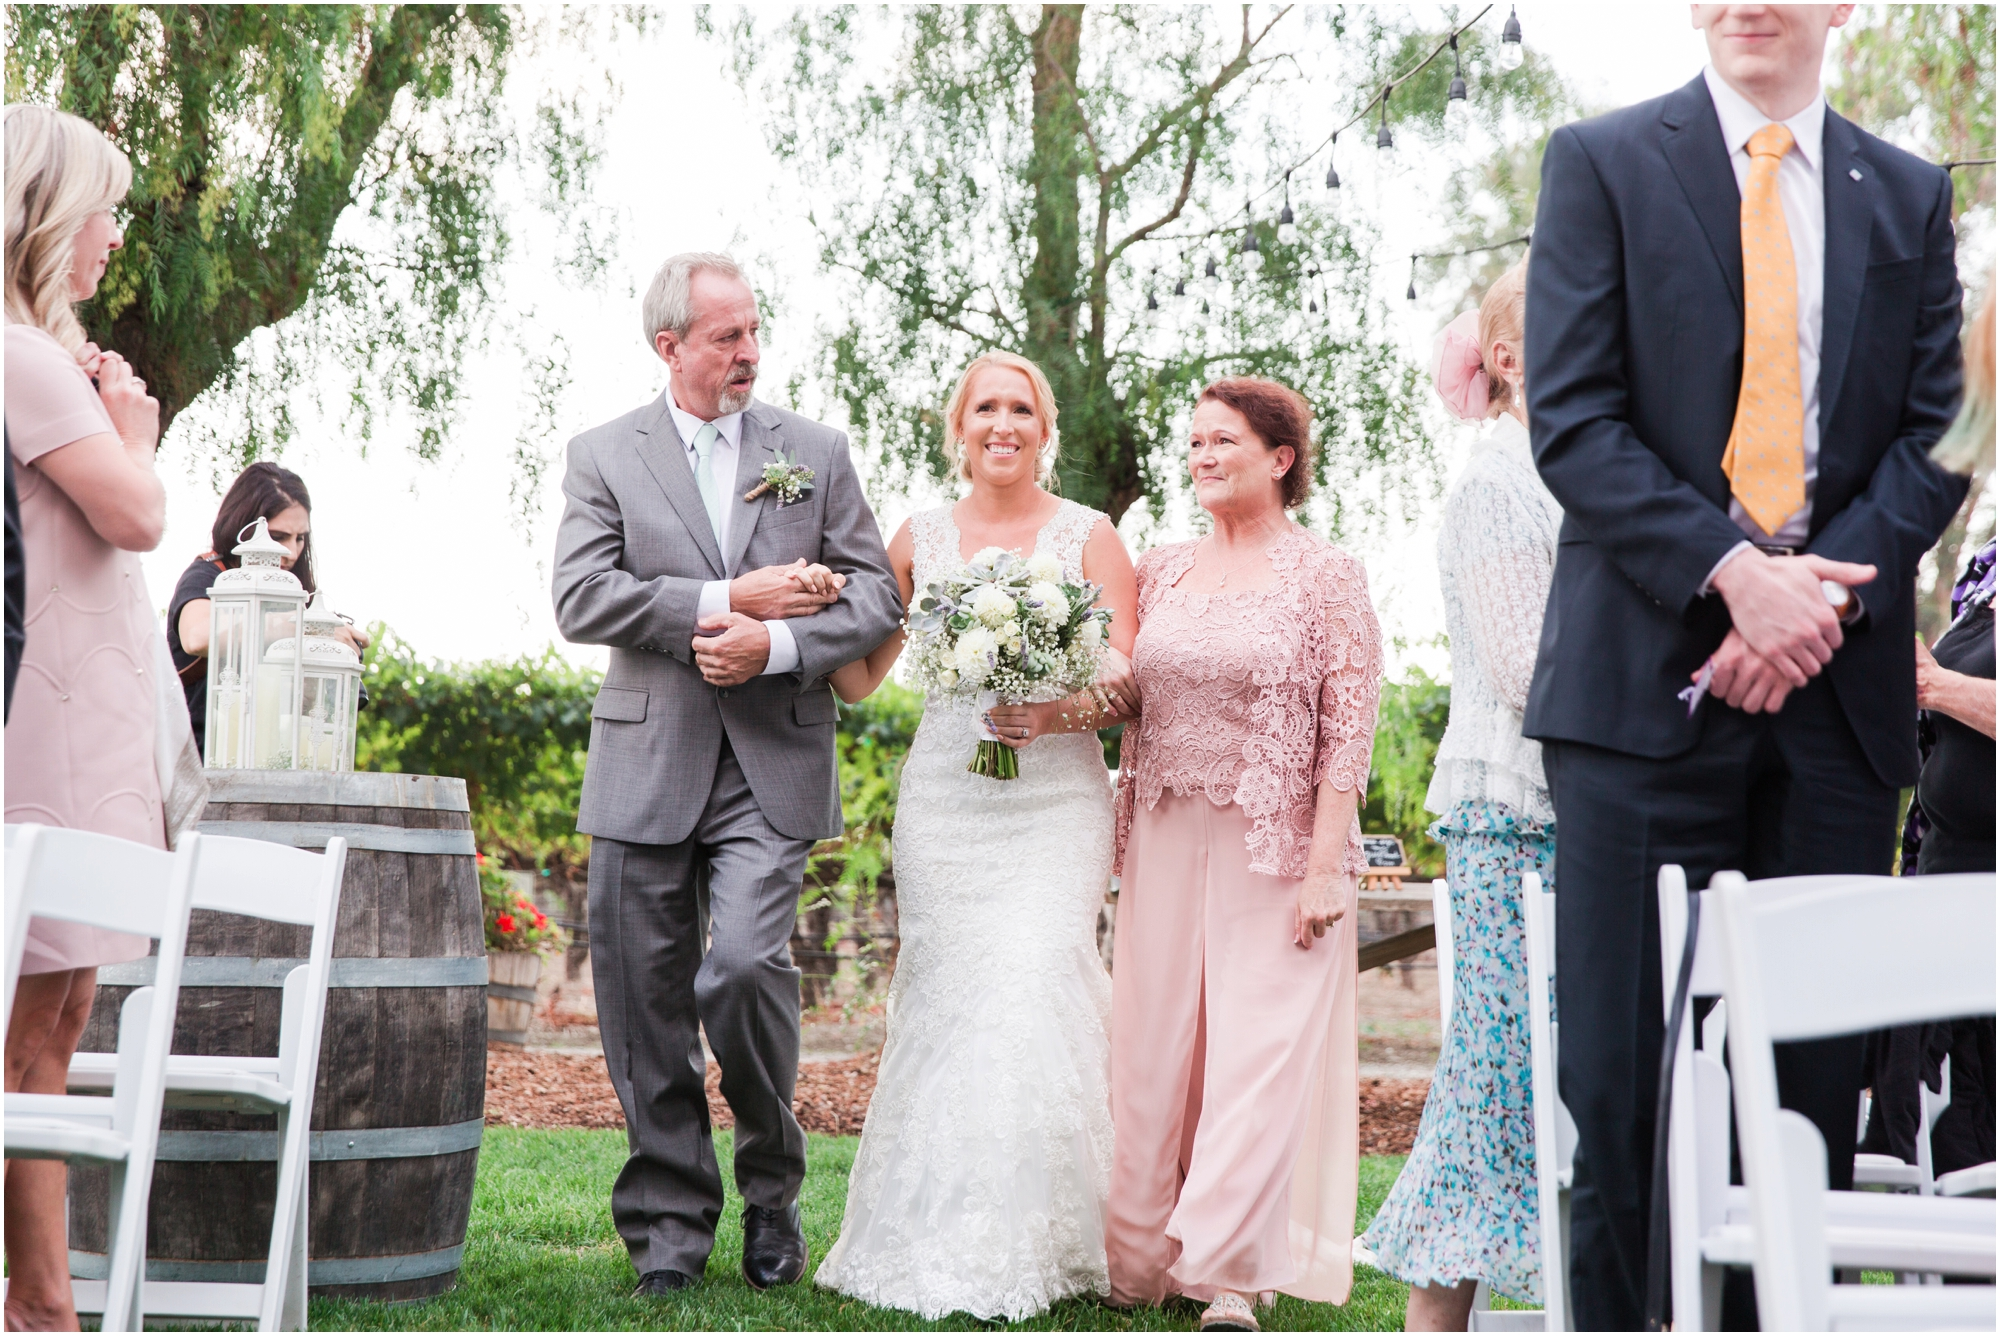 Retzlaff Winery wedding pictures by Briana Calderon Photography_2308.jpg